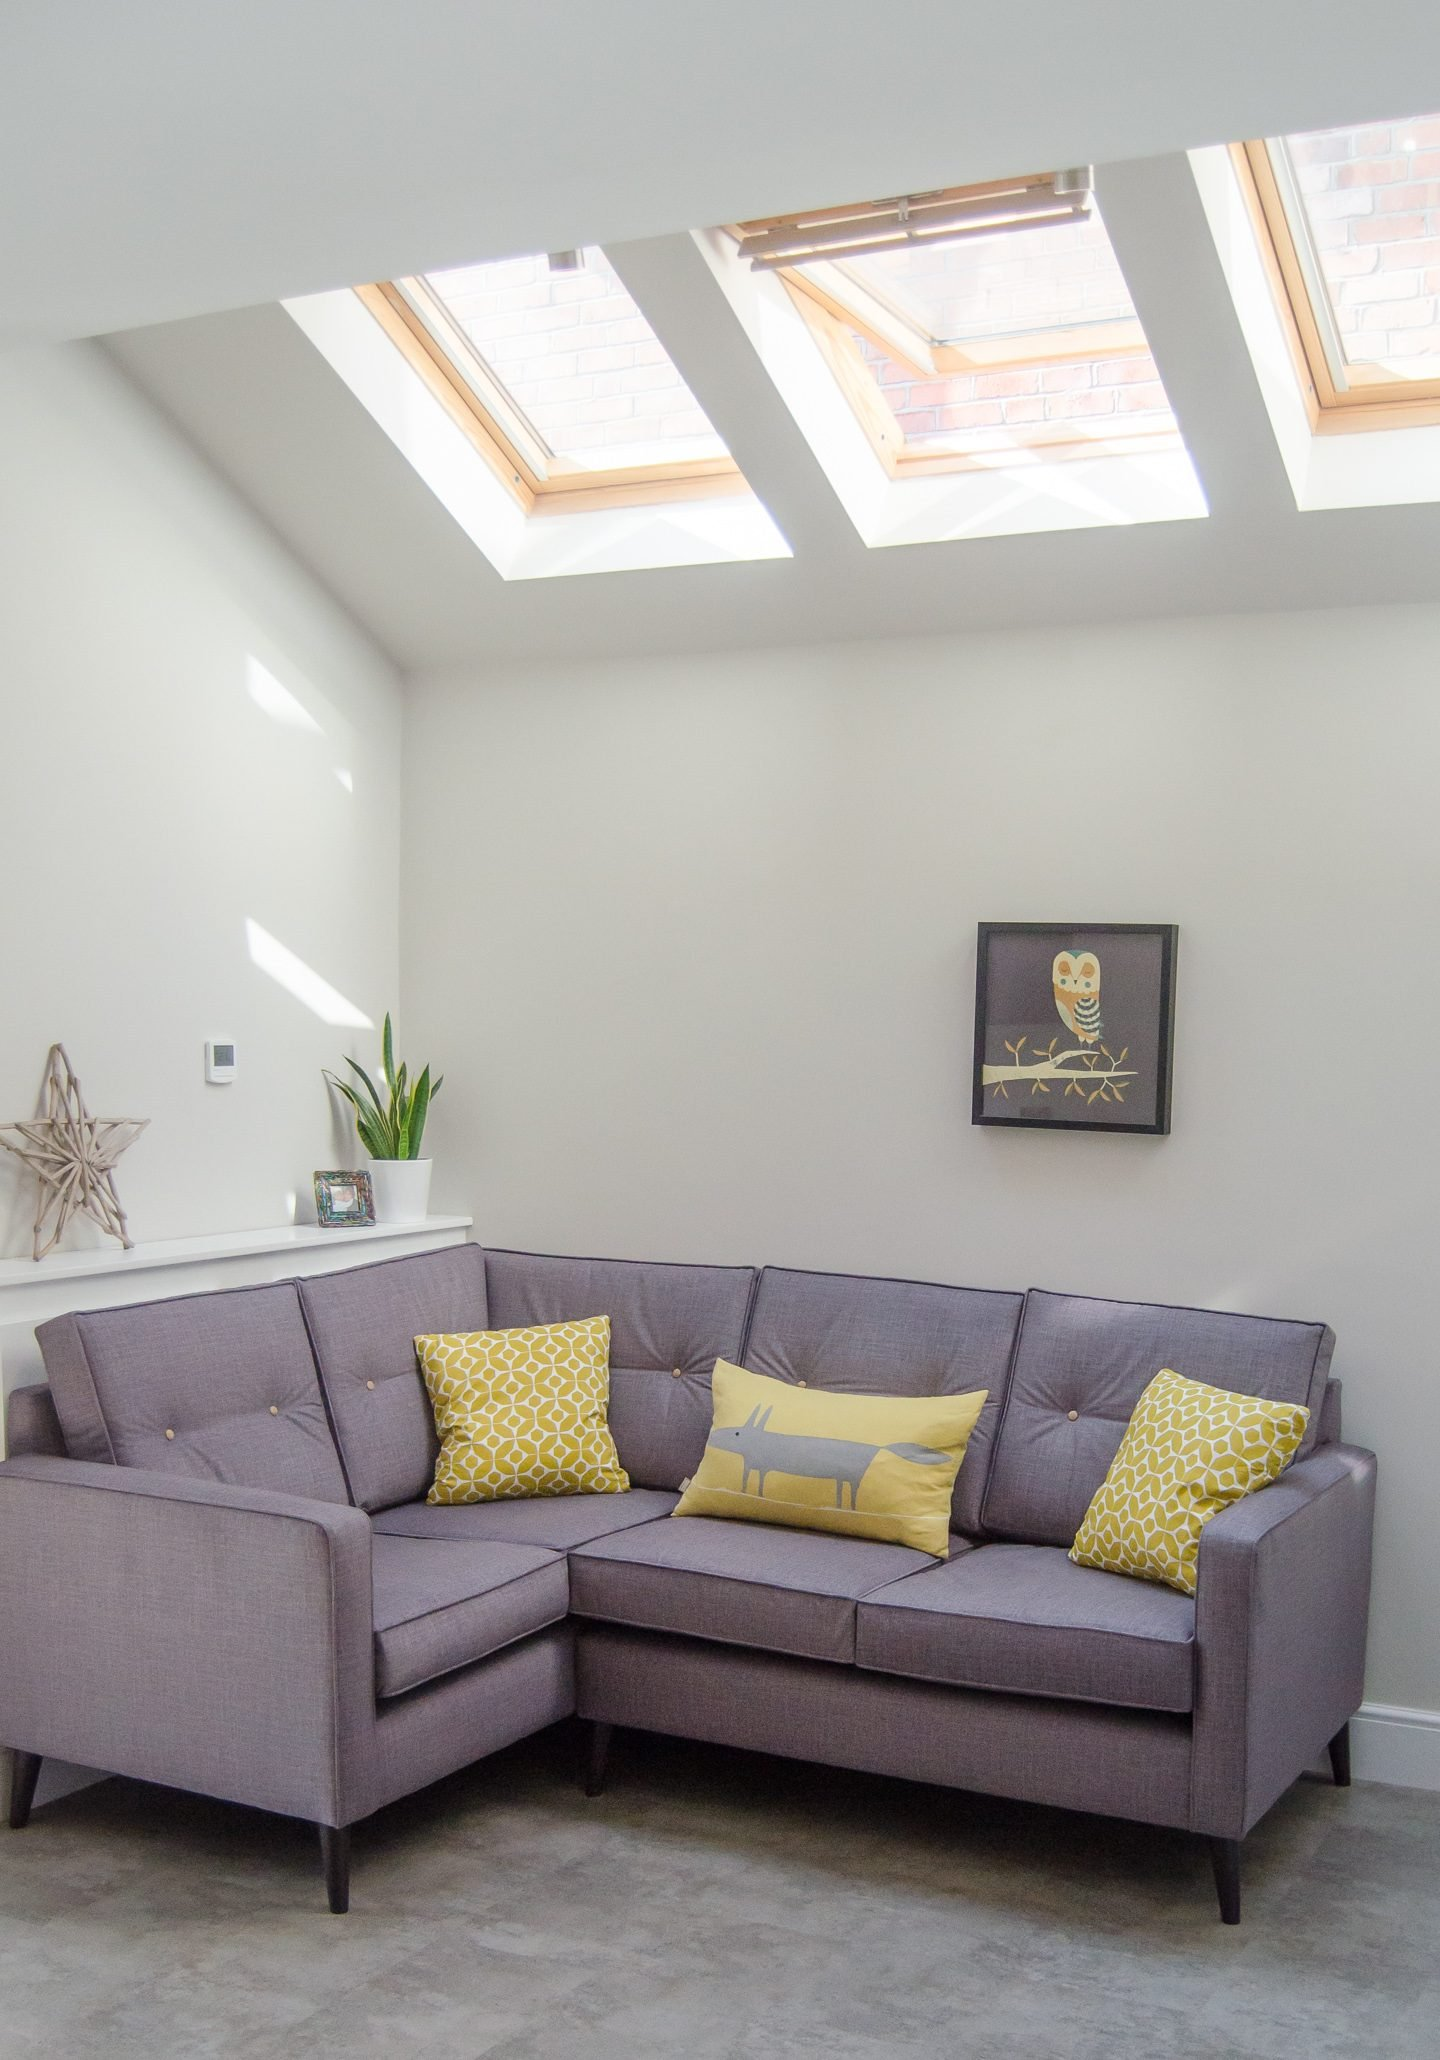 How A VELUX roof window can add light and space to a room